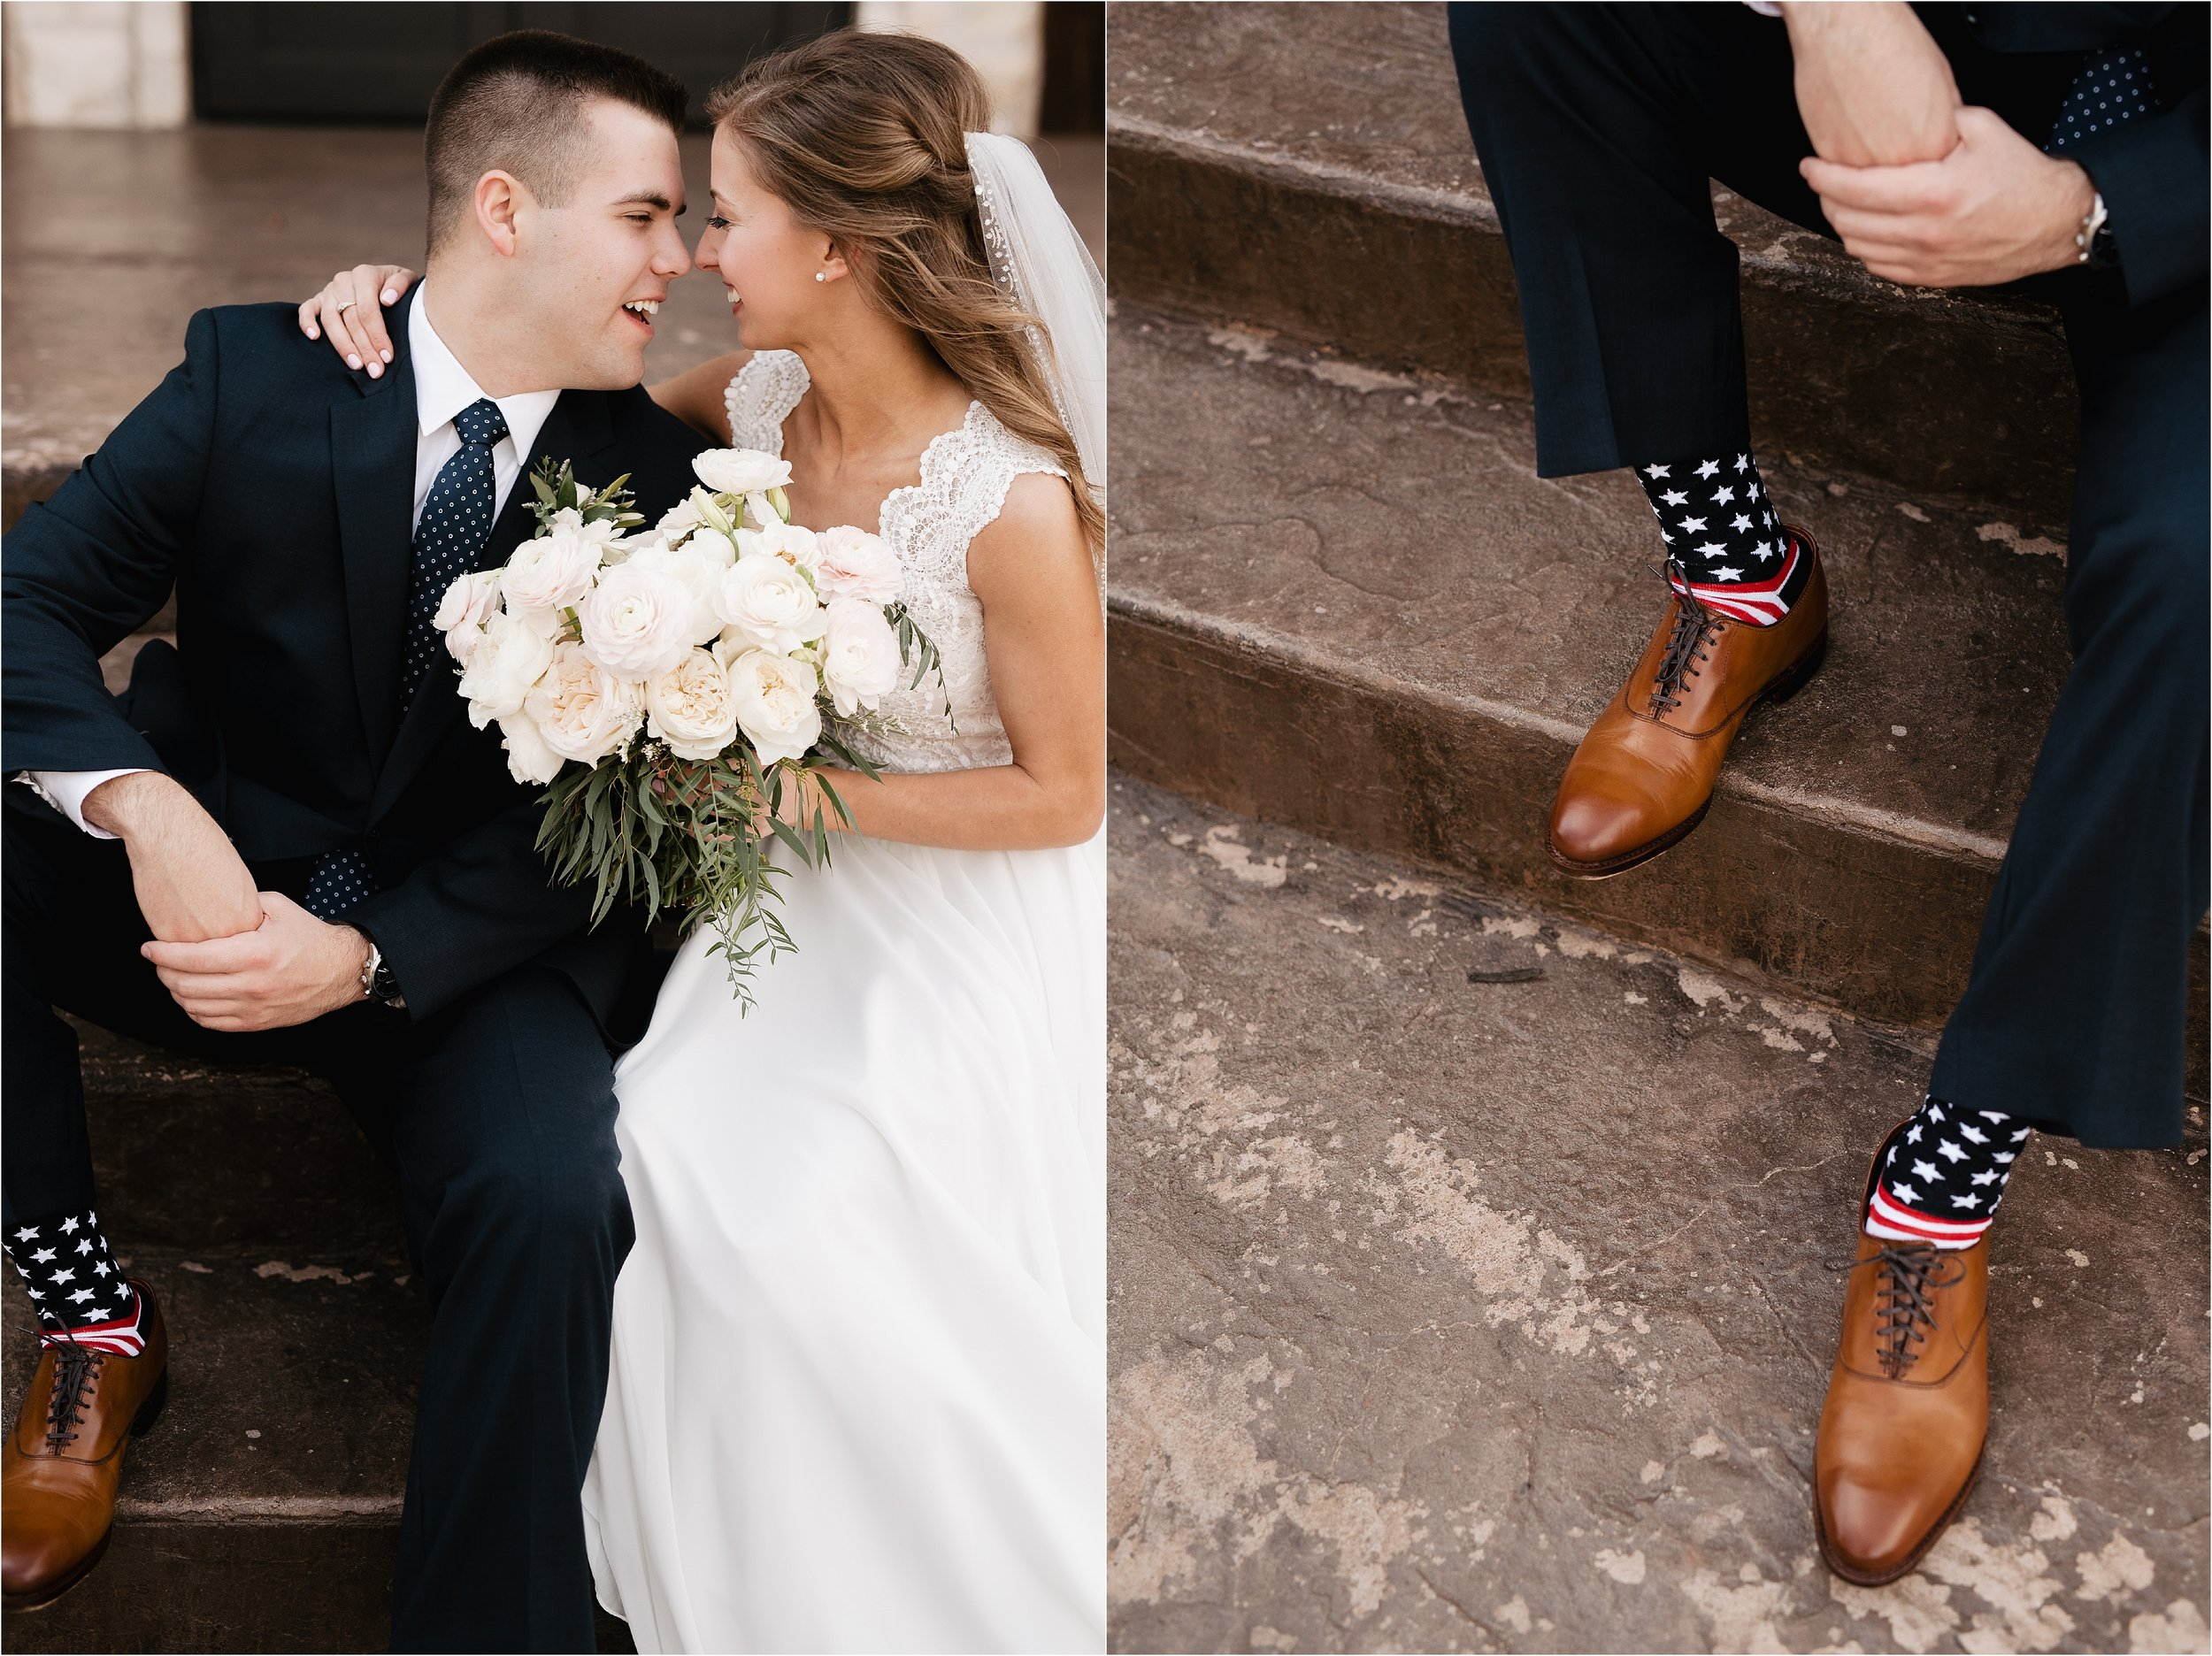 oklahoma wedding photography bride groom wedding day sweet bridal bouquet wedding flowers florals socks